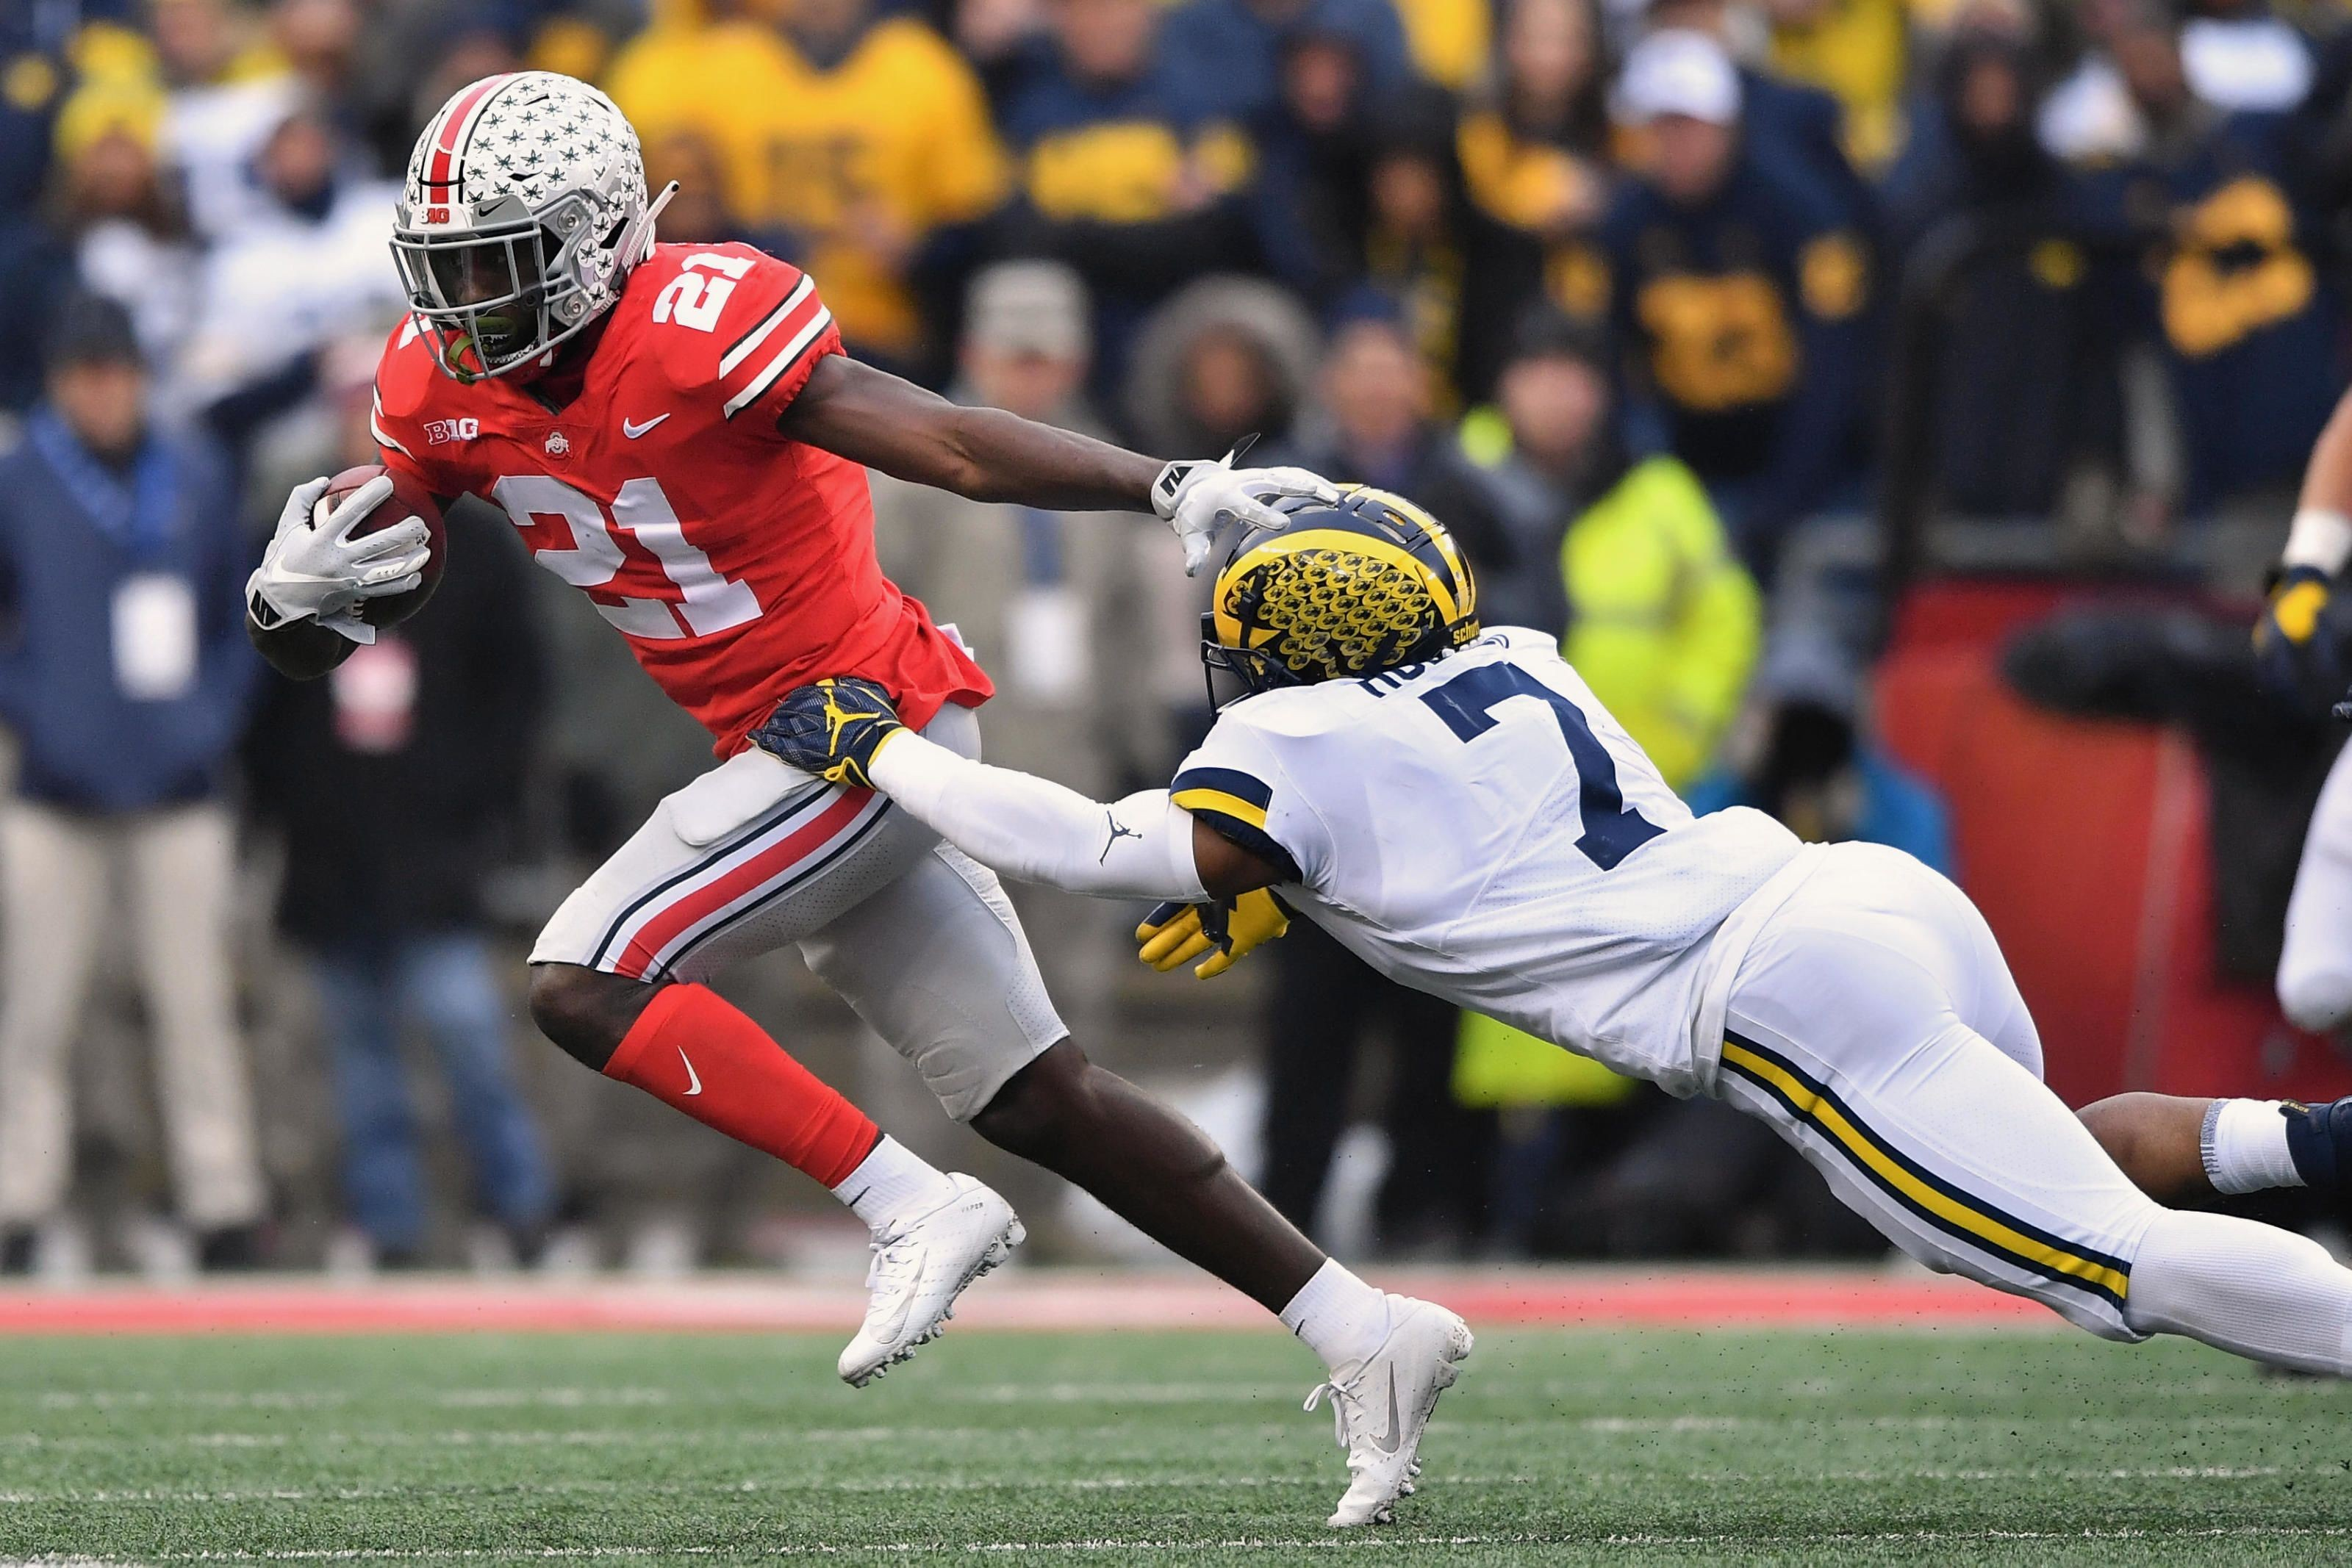 Ohio State Football: When is it best to lose to TTUN?